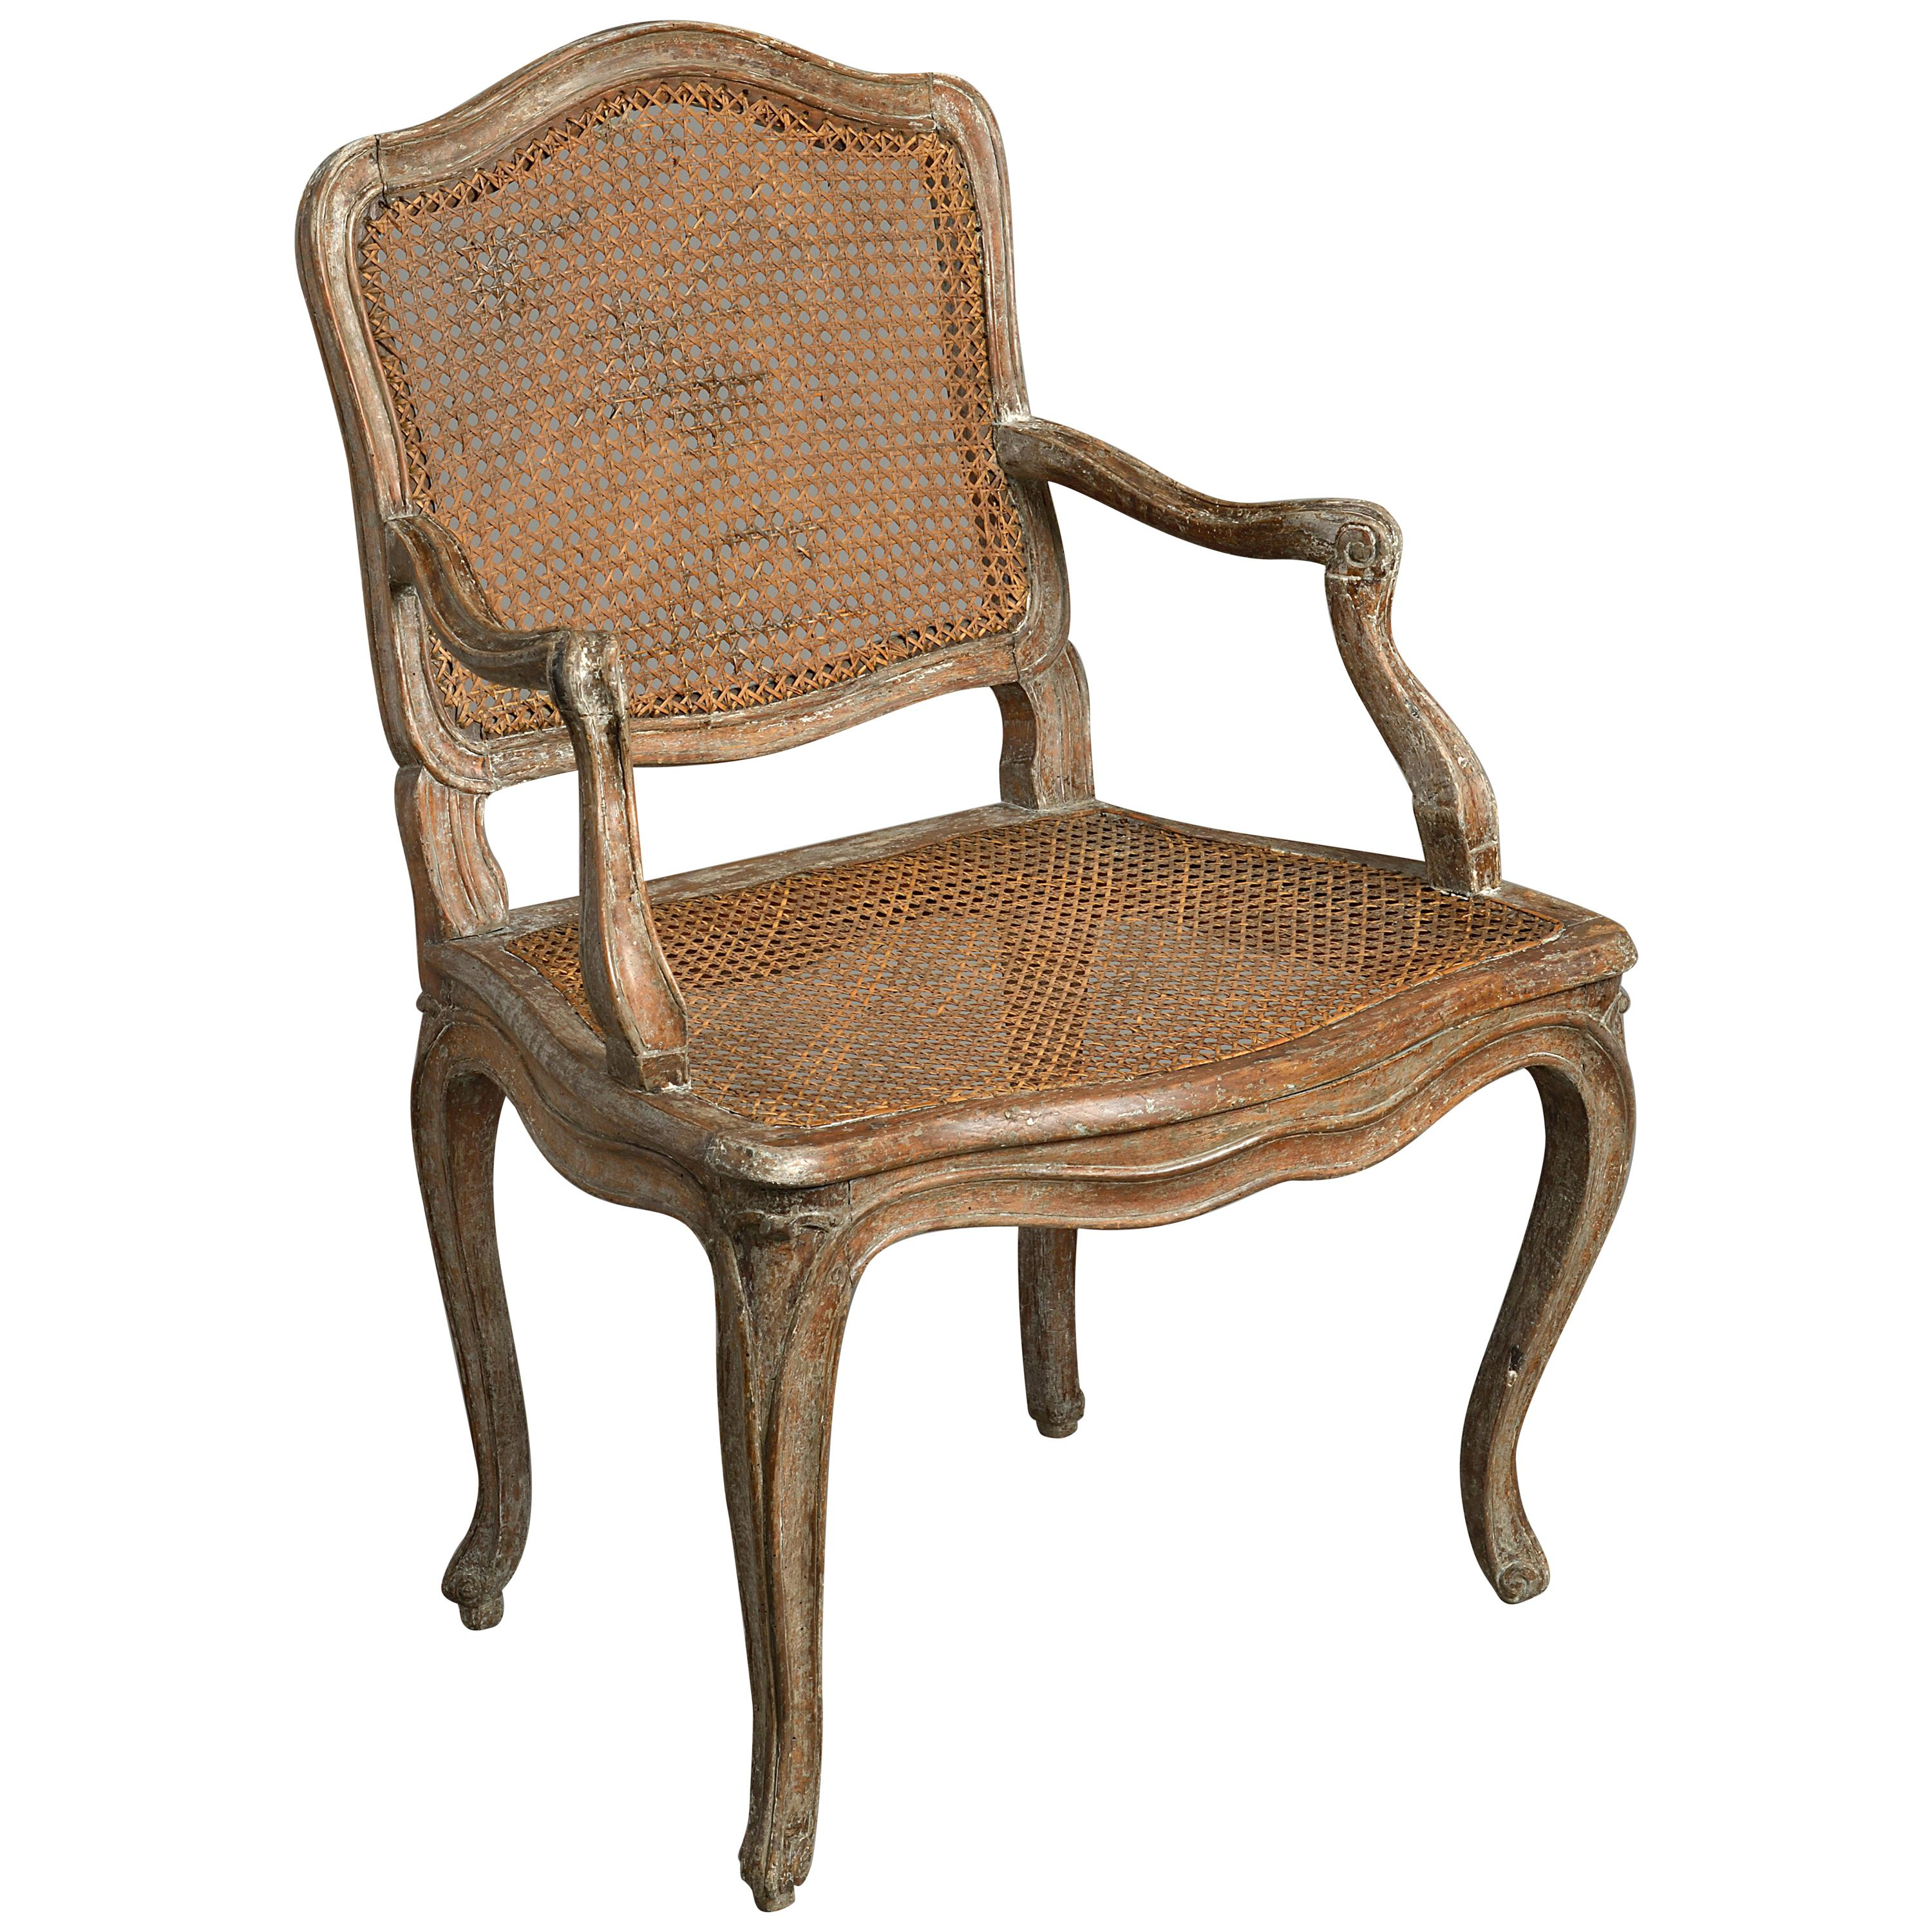 18th Century Louis XV Period Painted Fauteuil Armchair